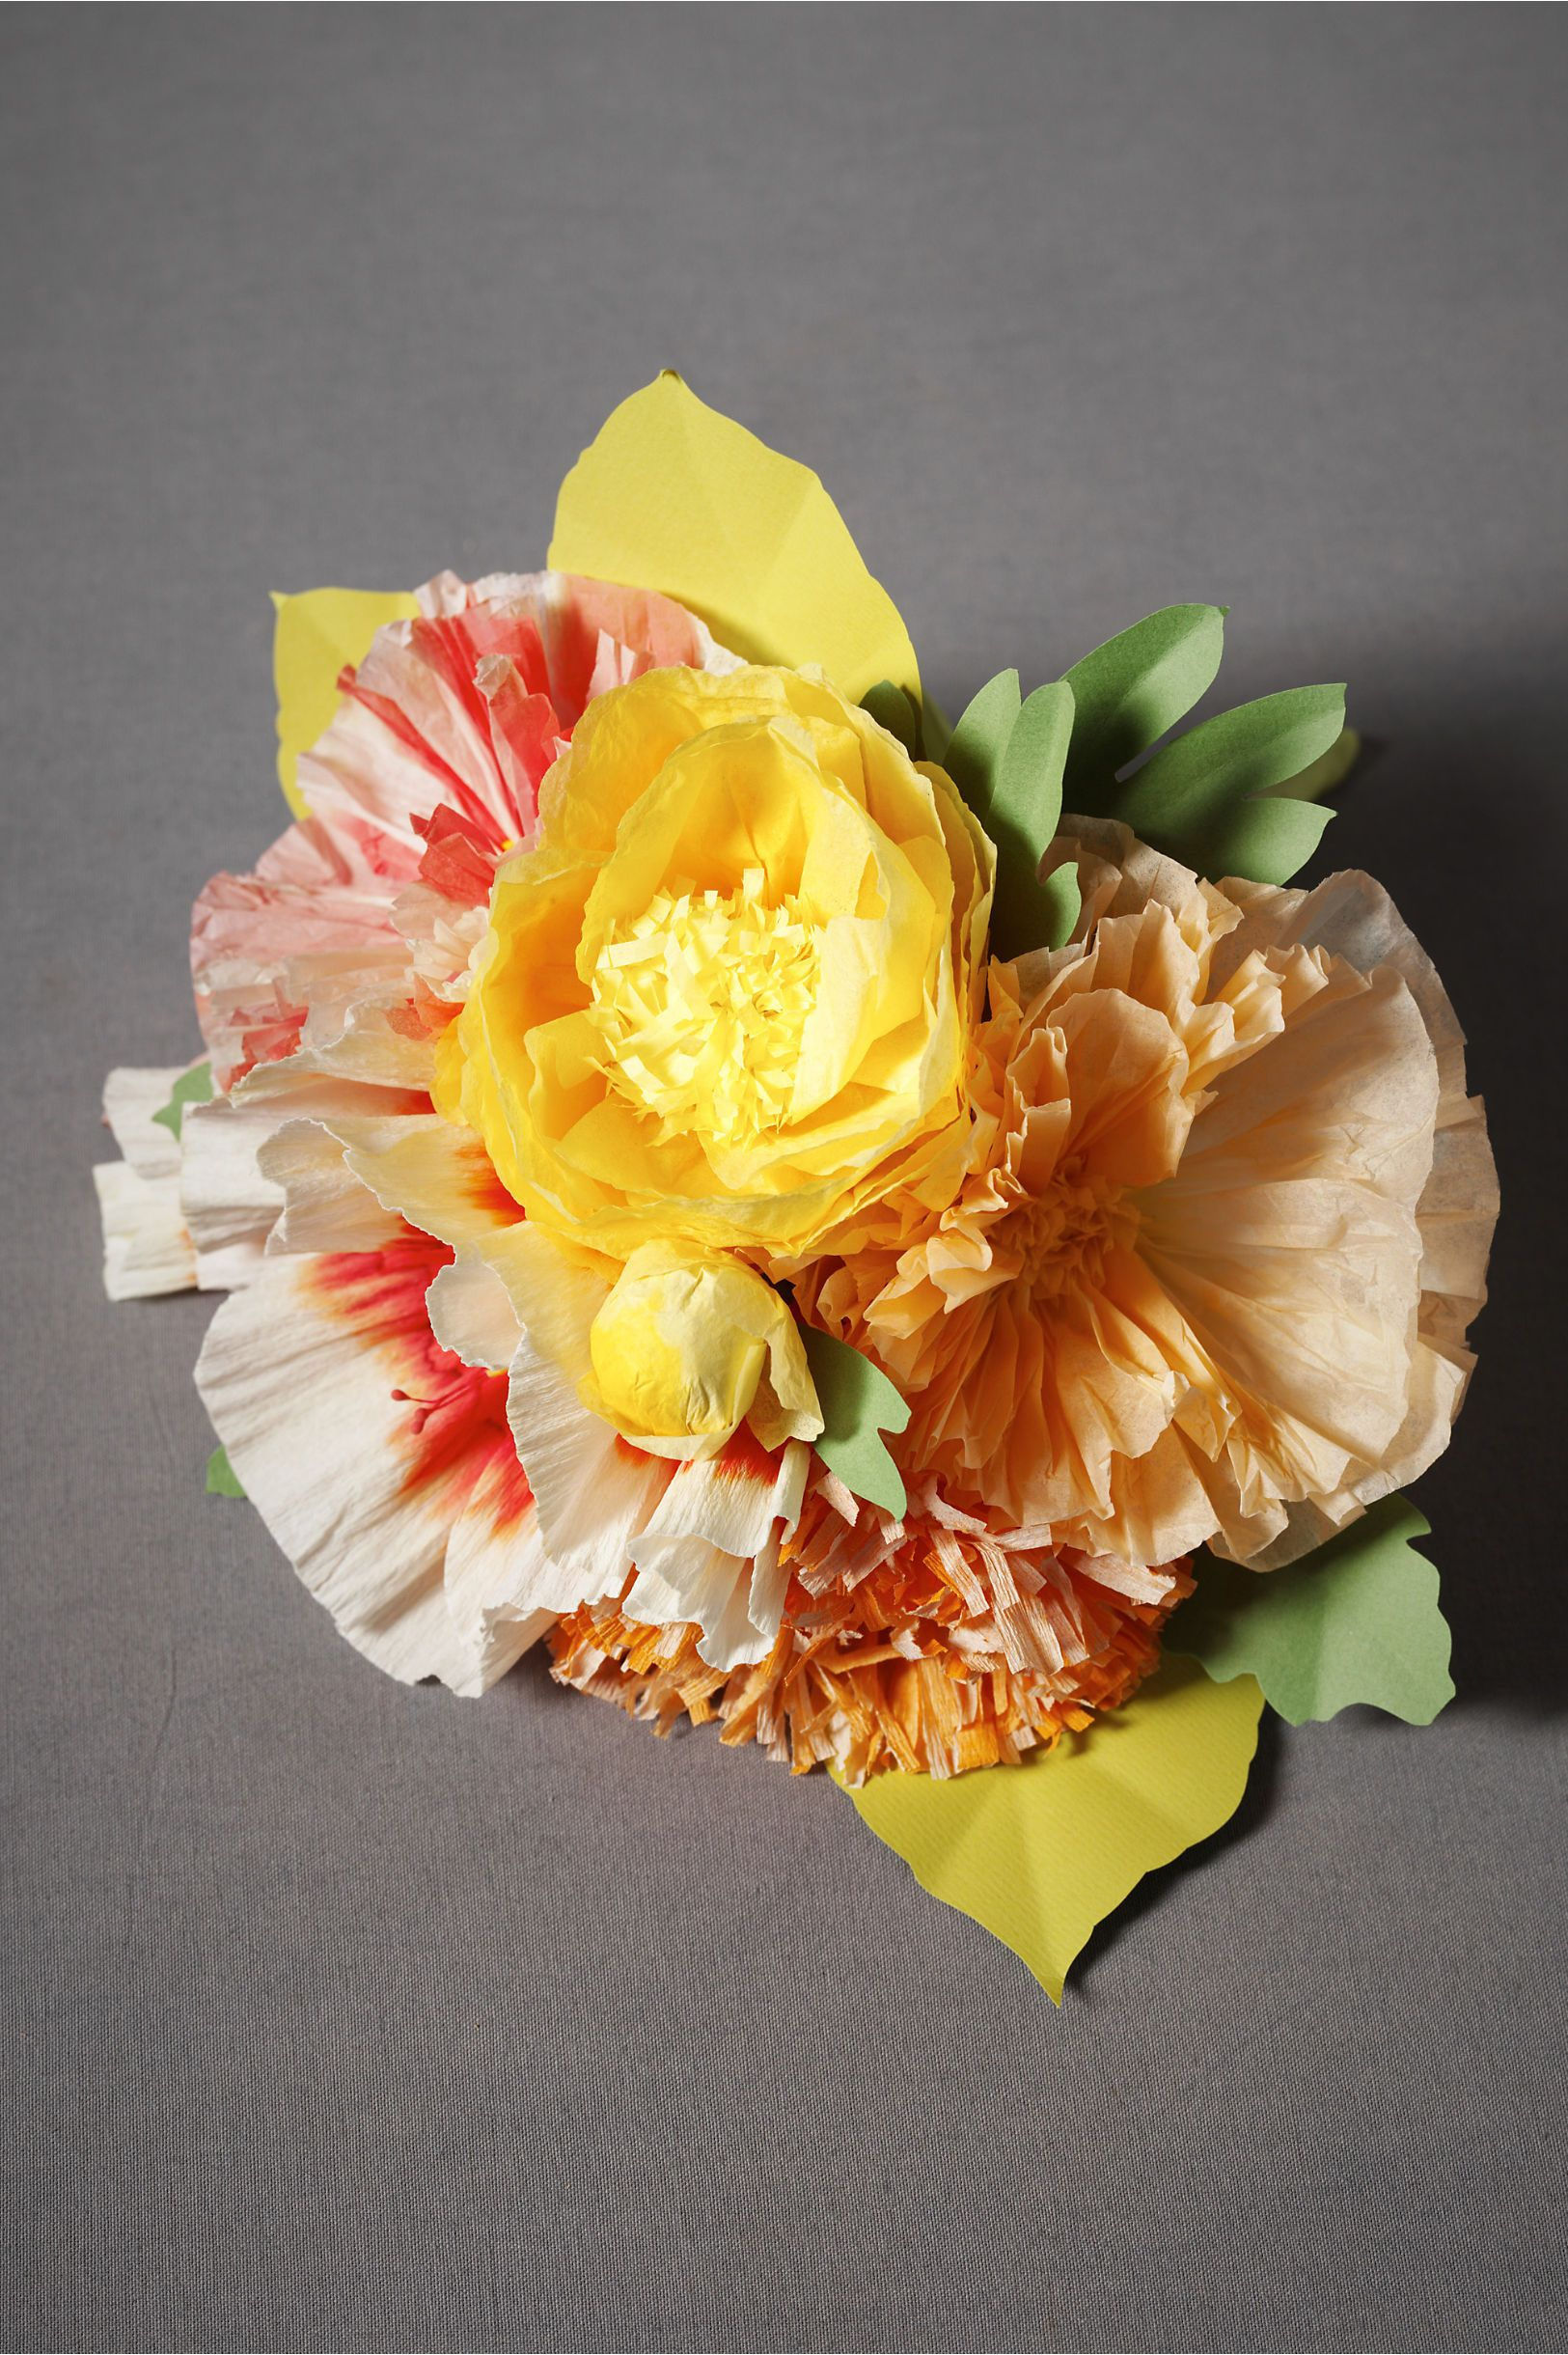 Paper flower inspiration  creative  Pinterest  Flower Crafty and